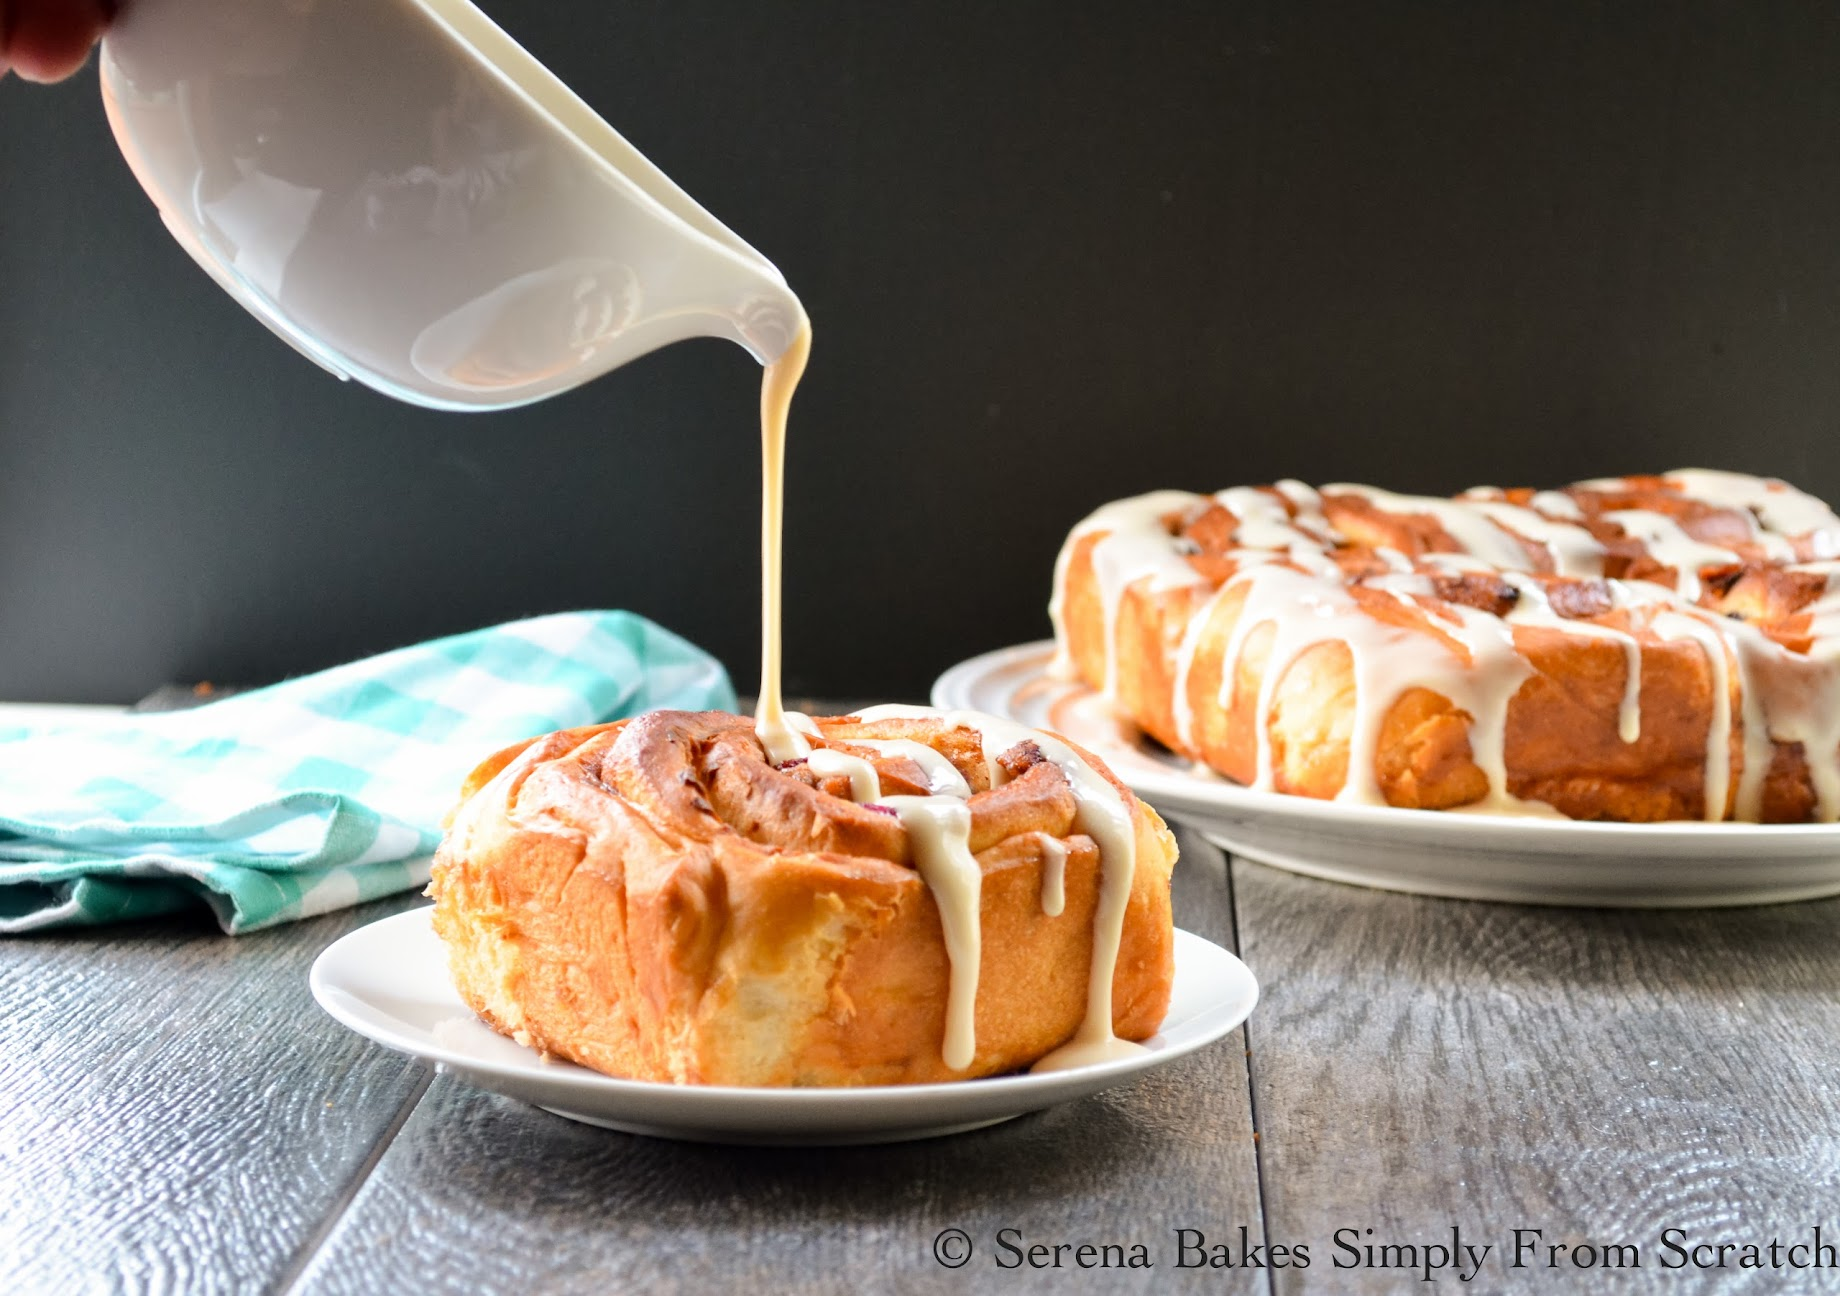 Bacon Blueberry Cinnamon Rolls drizzled with maple icing.